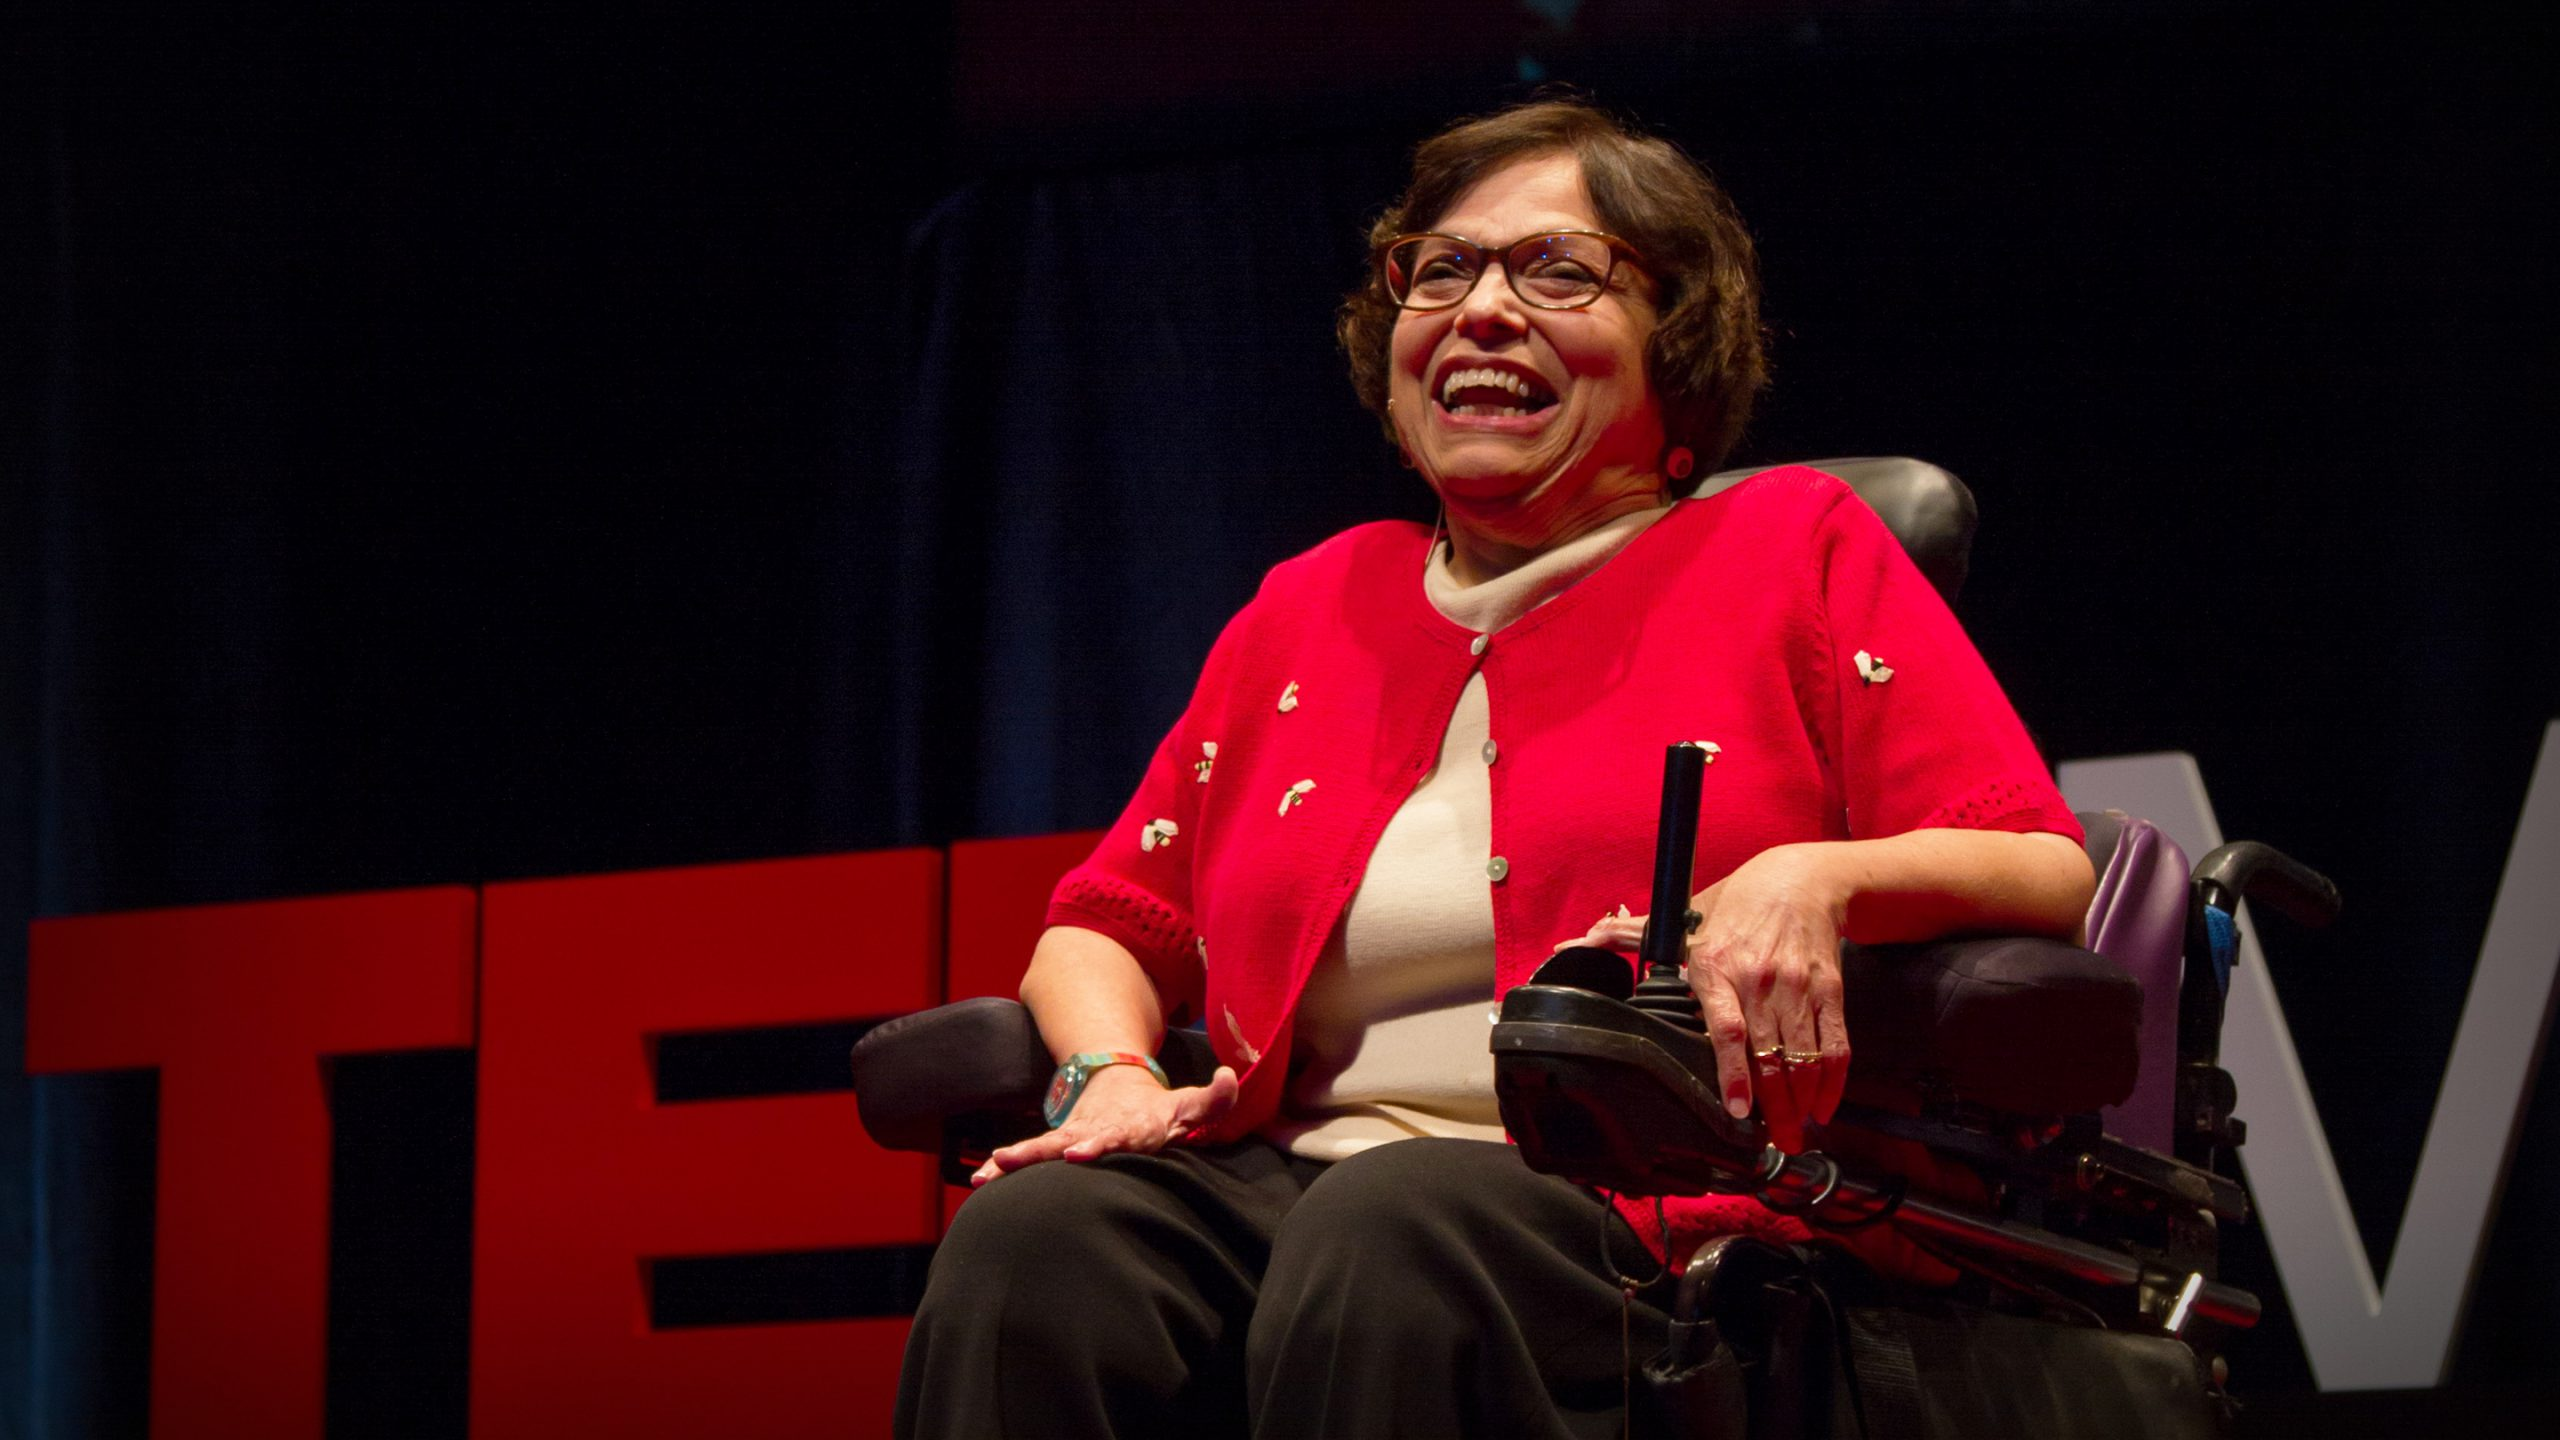 Judy Heumann | Advocate For Rights Of Disabled People | judithheumann